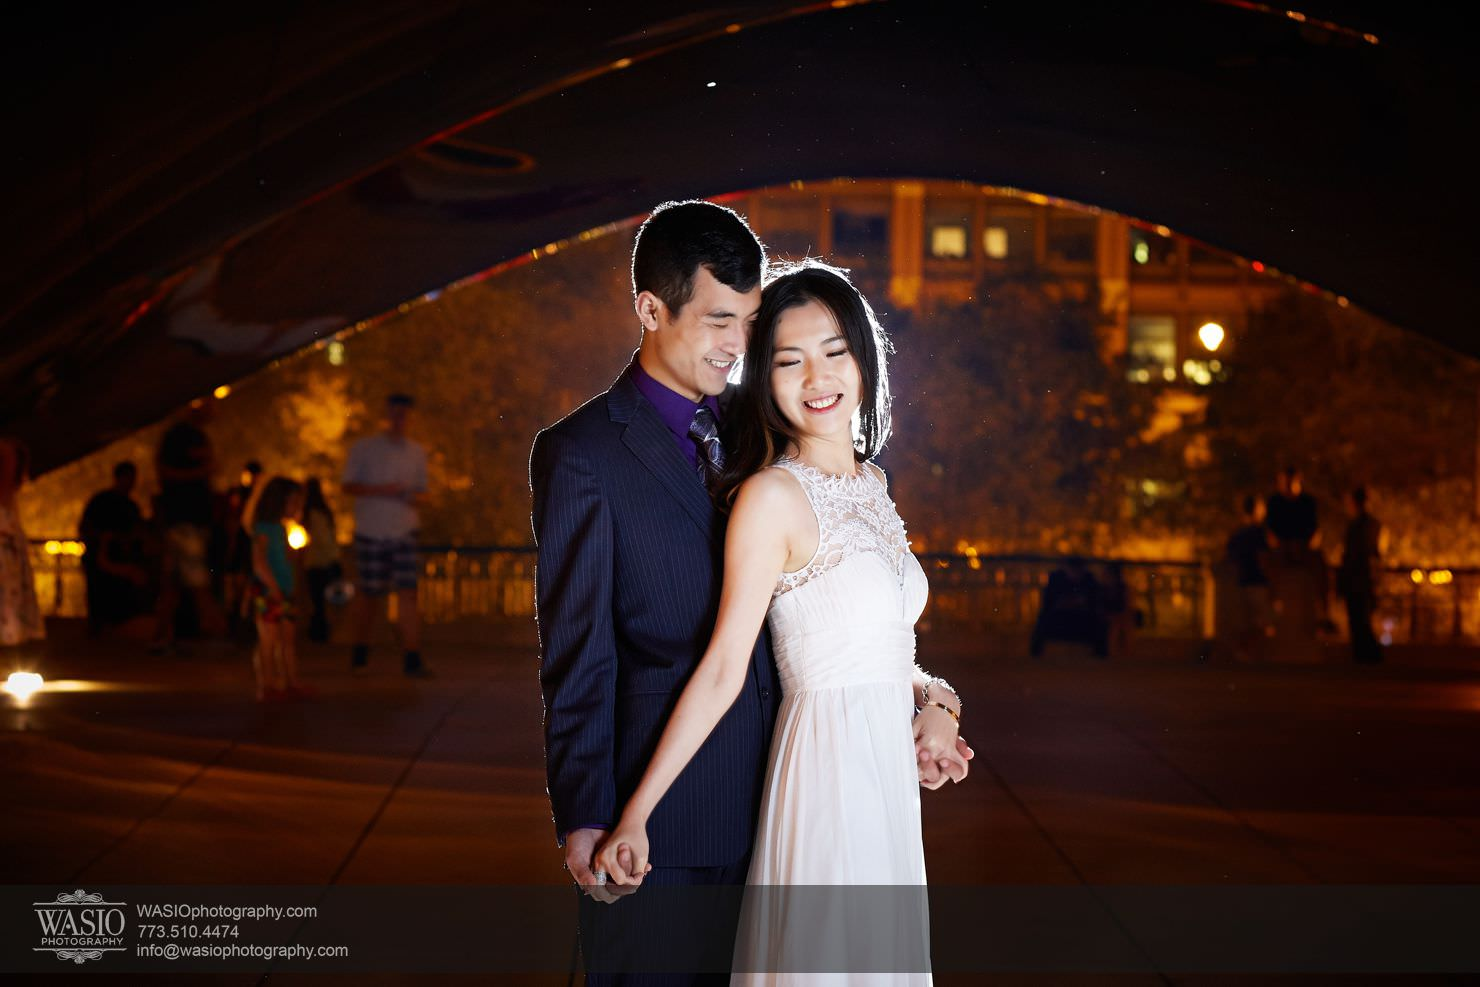 chicago-sunset-engagement-session-downtown-destination-001031 Chicago Sunset engagement - Yulin & Mika